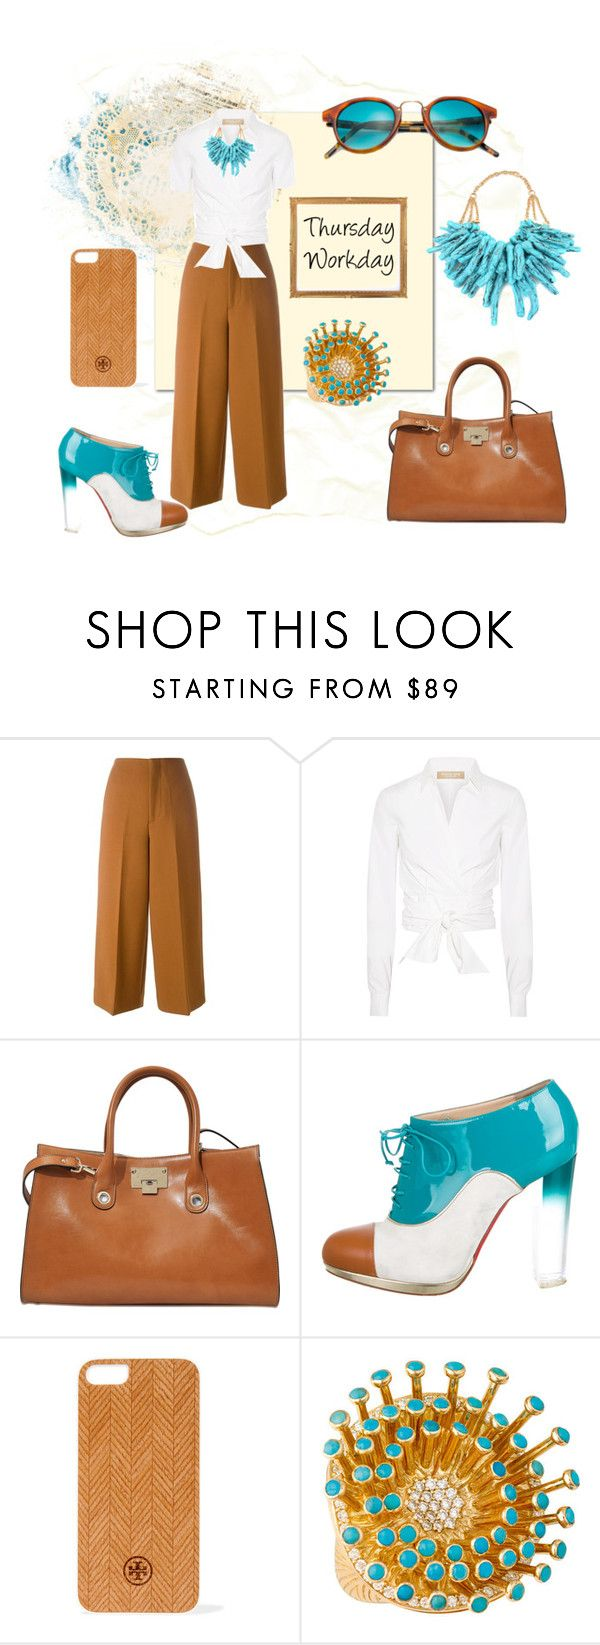 """""""Thursday Workday"""" by blackdoor ❤ liked on Polyvore featuring Marni, Michael Kors, Jimmy Choo, Christian Louboutin, Tory Burch, Christina Debs and Kyme"""